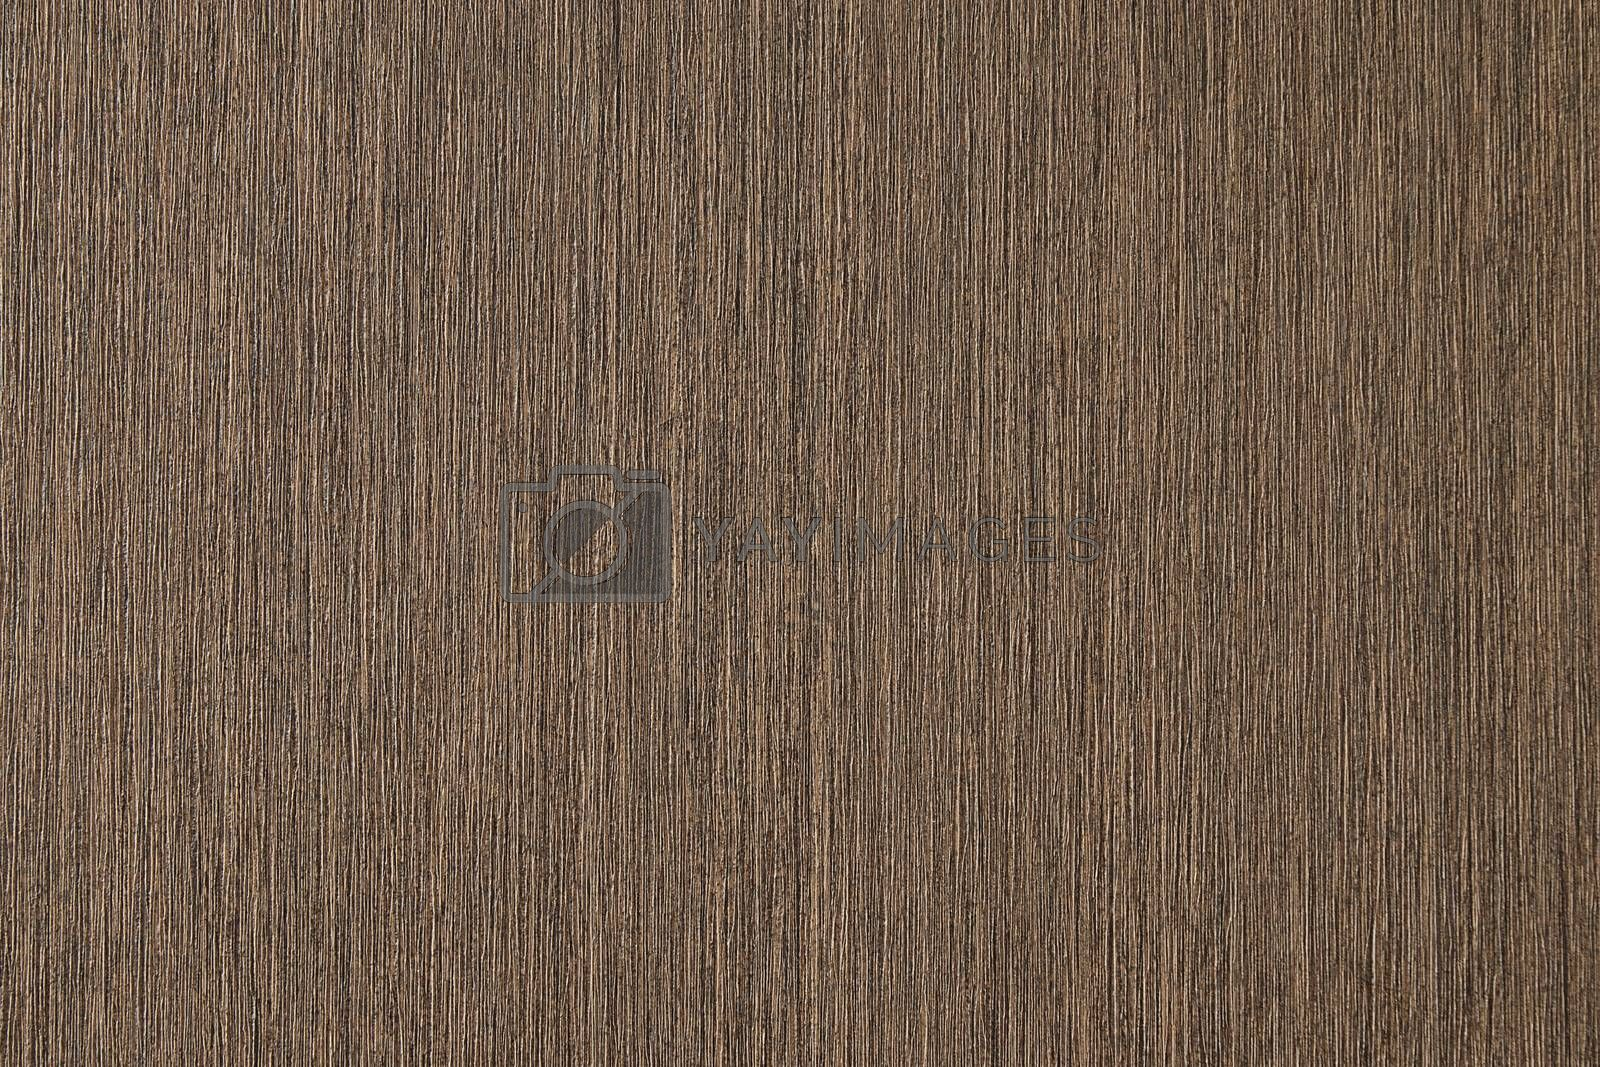 A brown background with a vertical texture